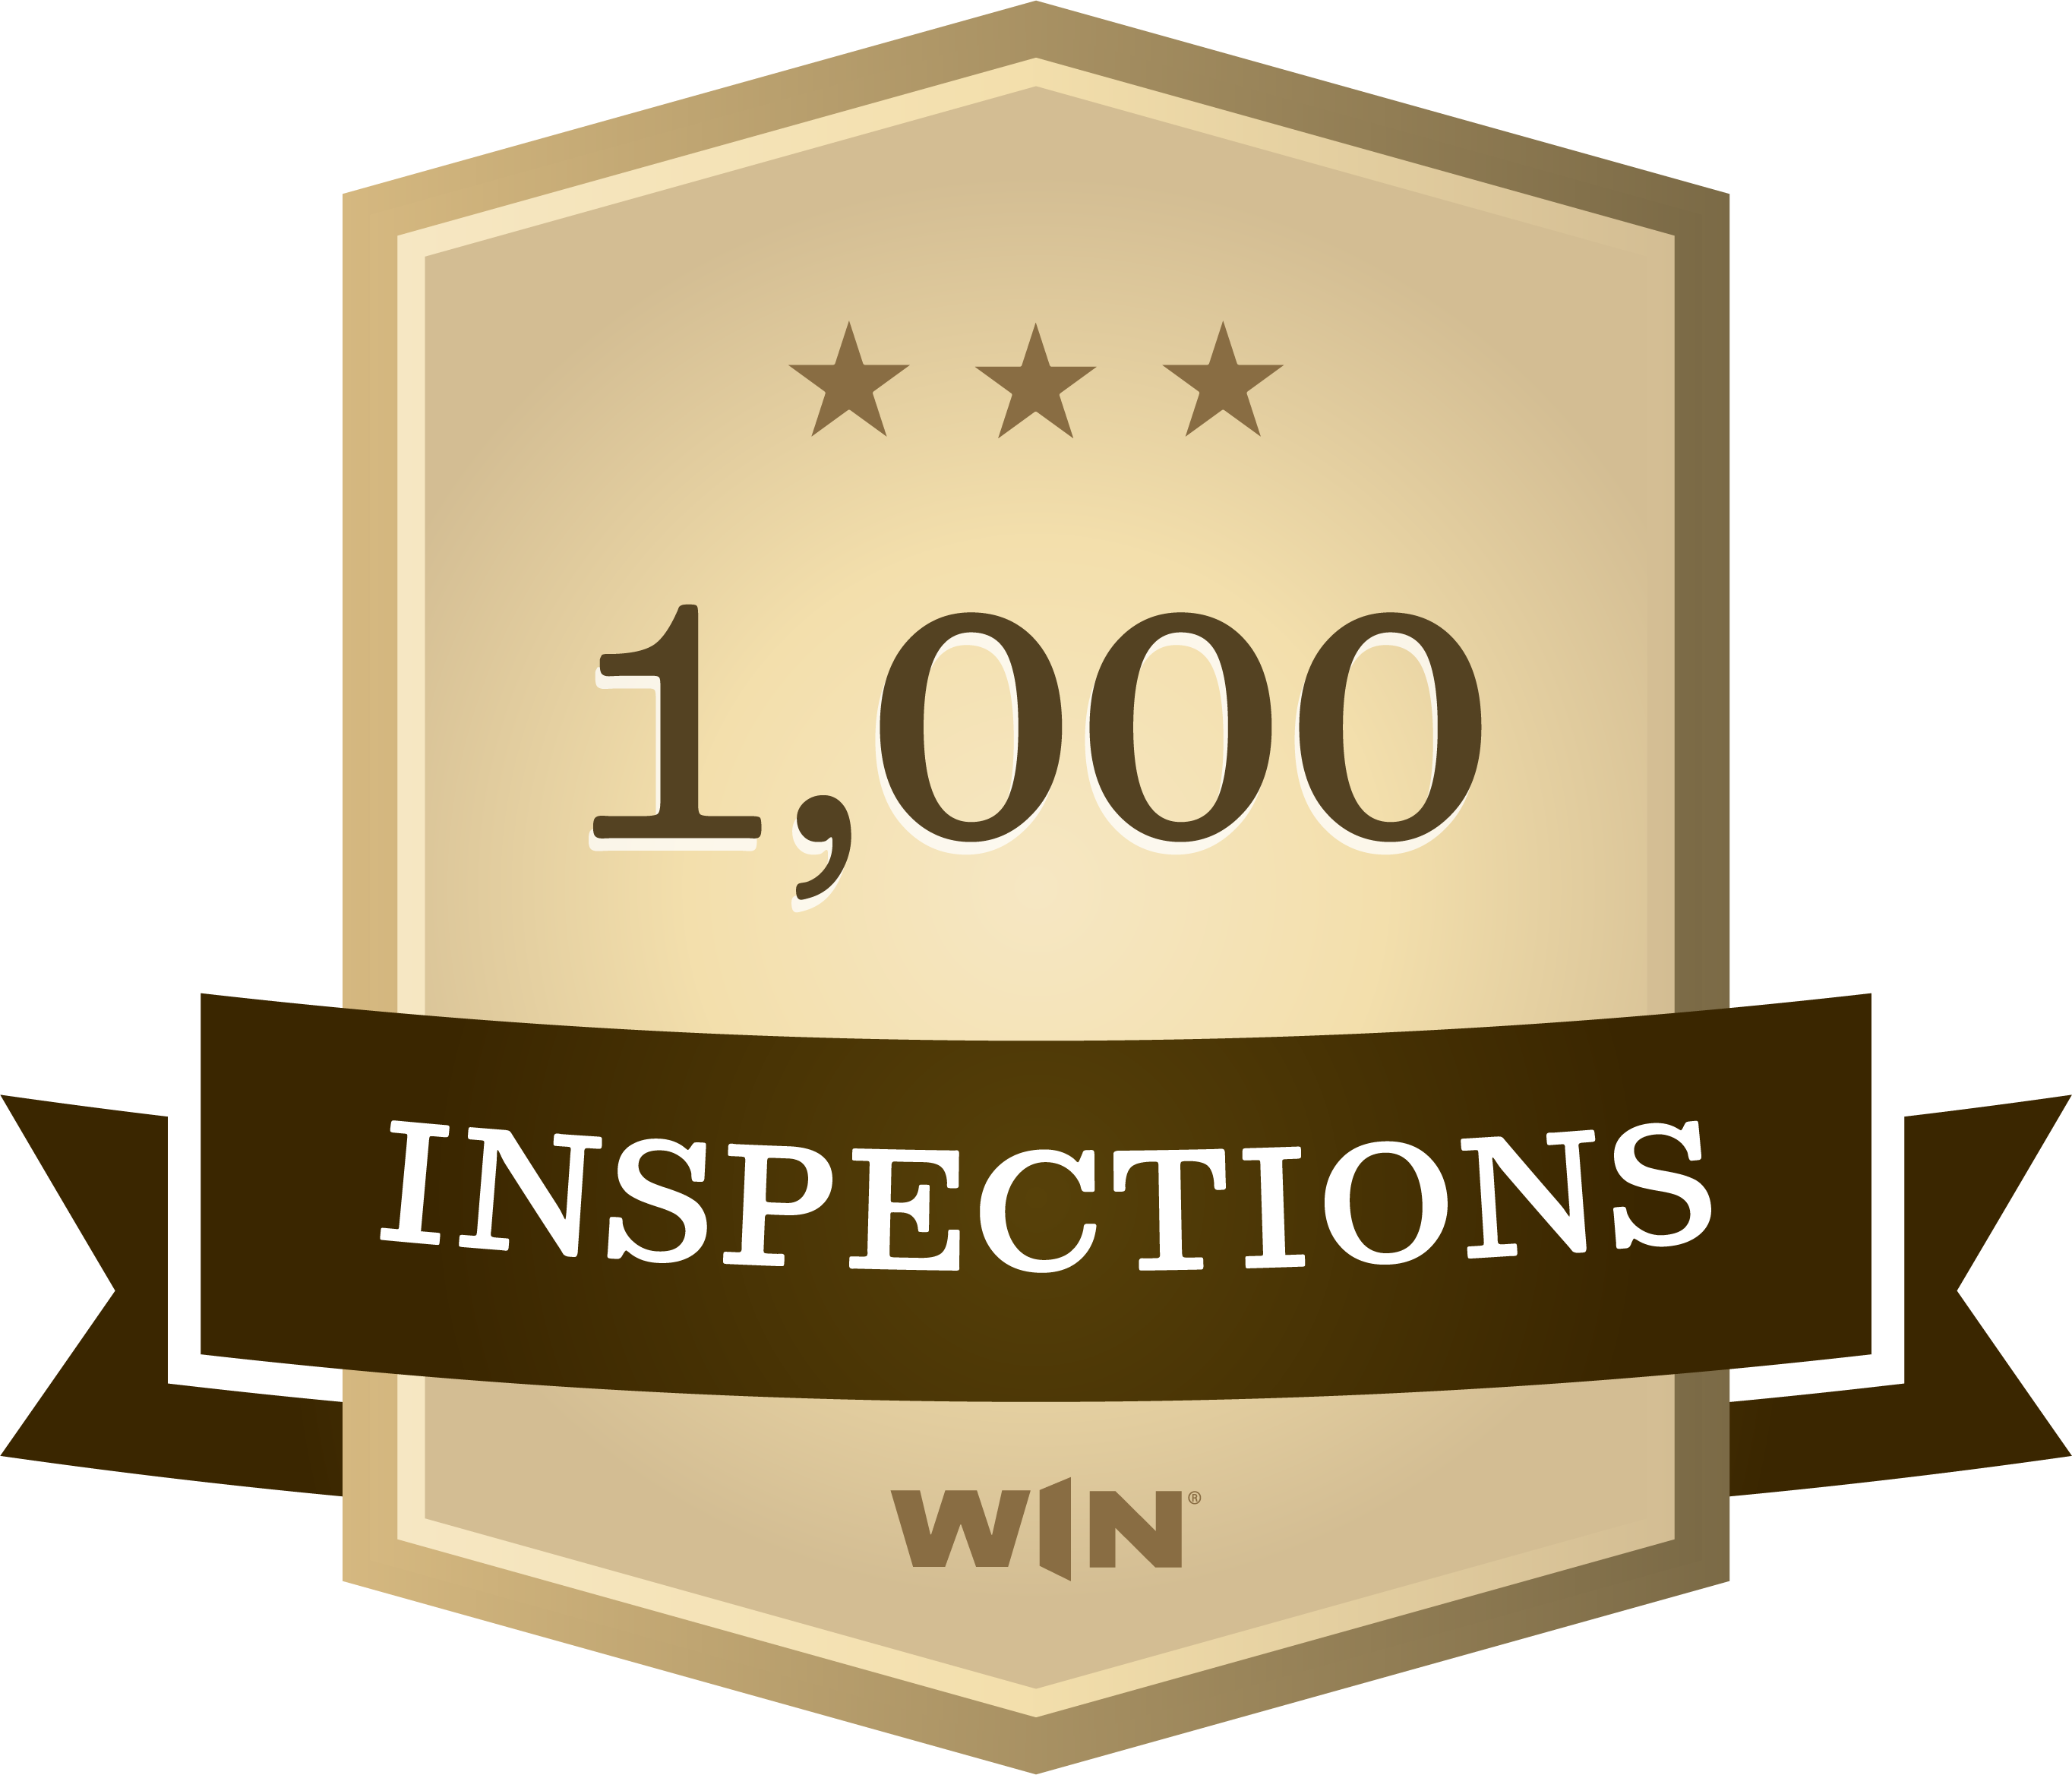 WIN_1k_Inspections.png